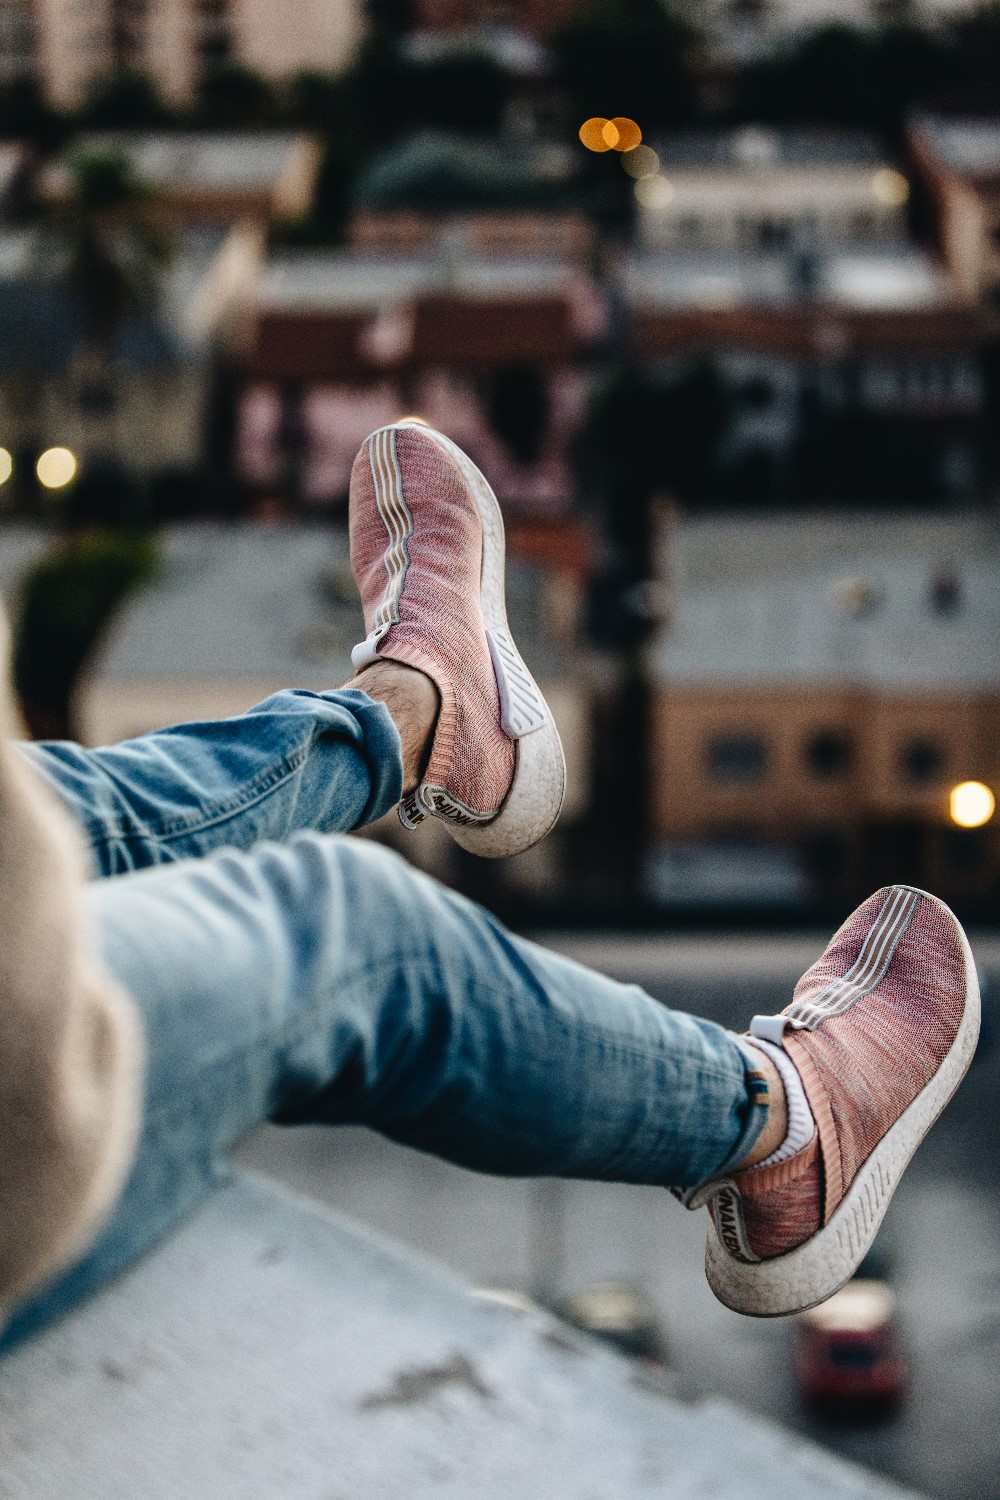 An In Depth Review of the Best Shoes for Neuropathy & Nerve Pain of 2018